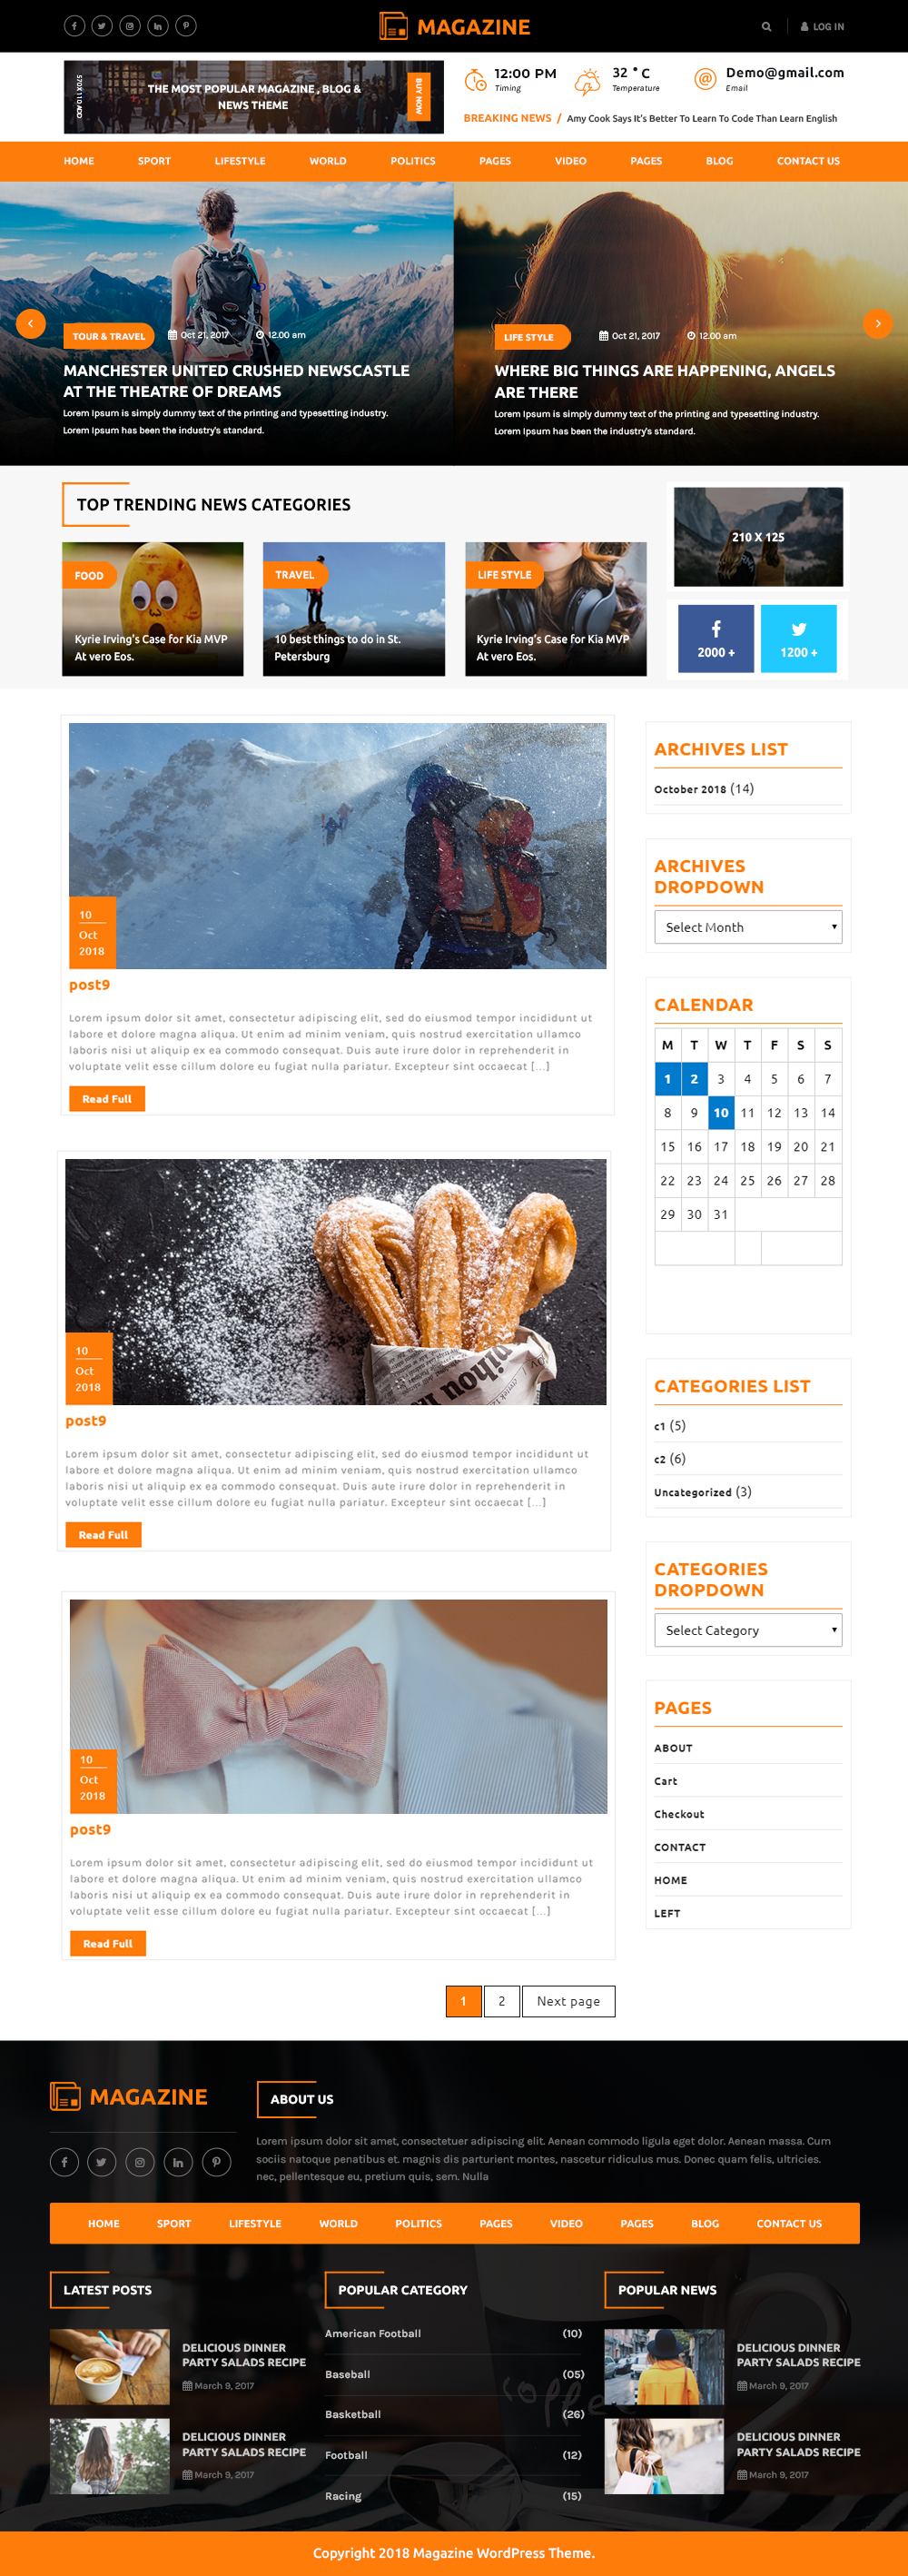 magazine-wordpress-theme-free